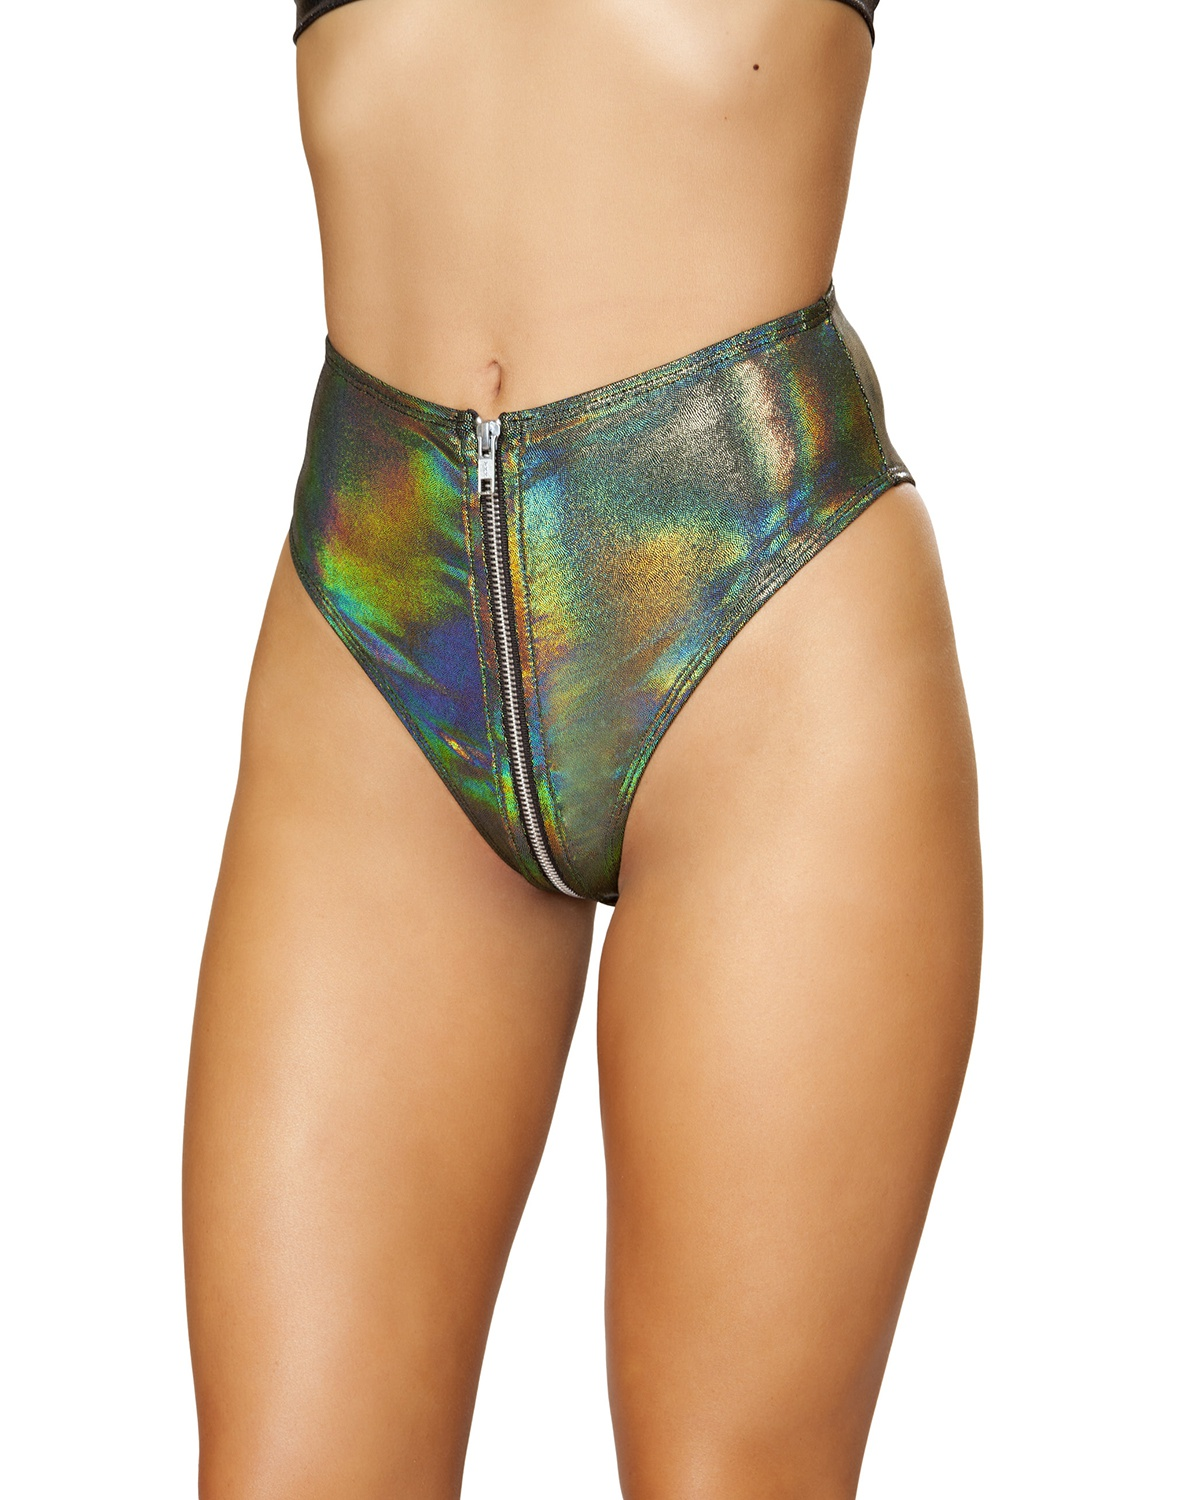 9d4e5ca085 0 Reviews.. RomaCostume 3538 1Pc High-Waisted Shorts With Zipper Front  Closure